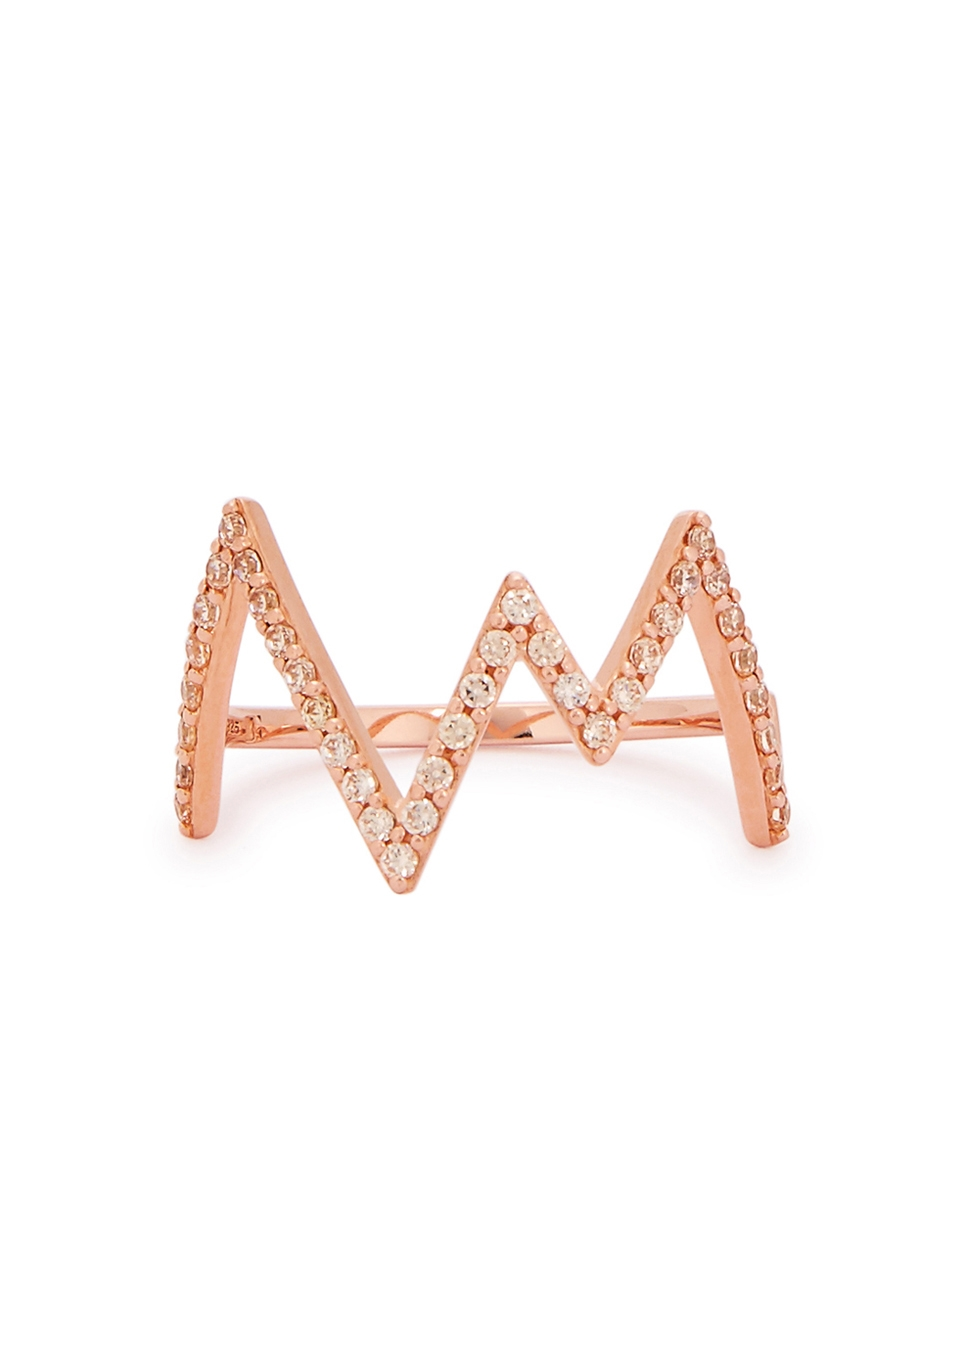 ROSIE FORTESCUE HEARTBEAT 18CT ROSE GOLD-PLATED RING